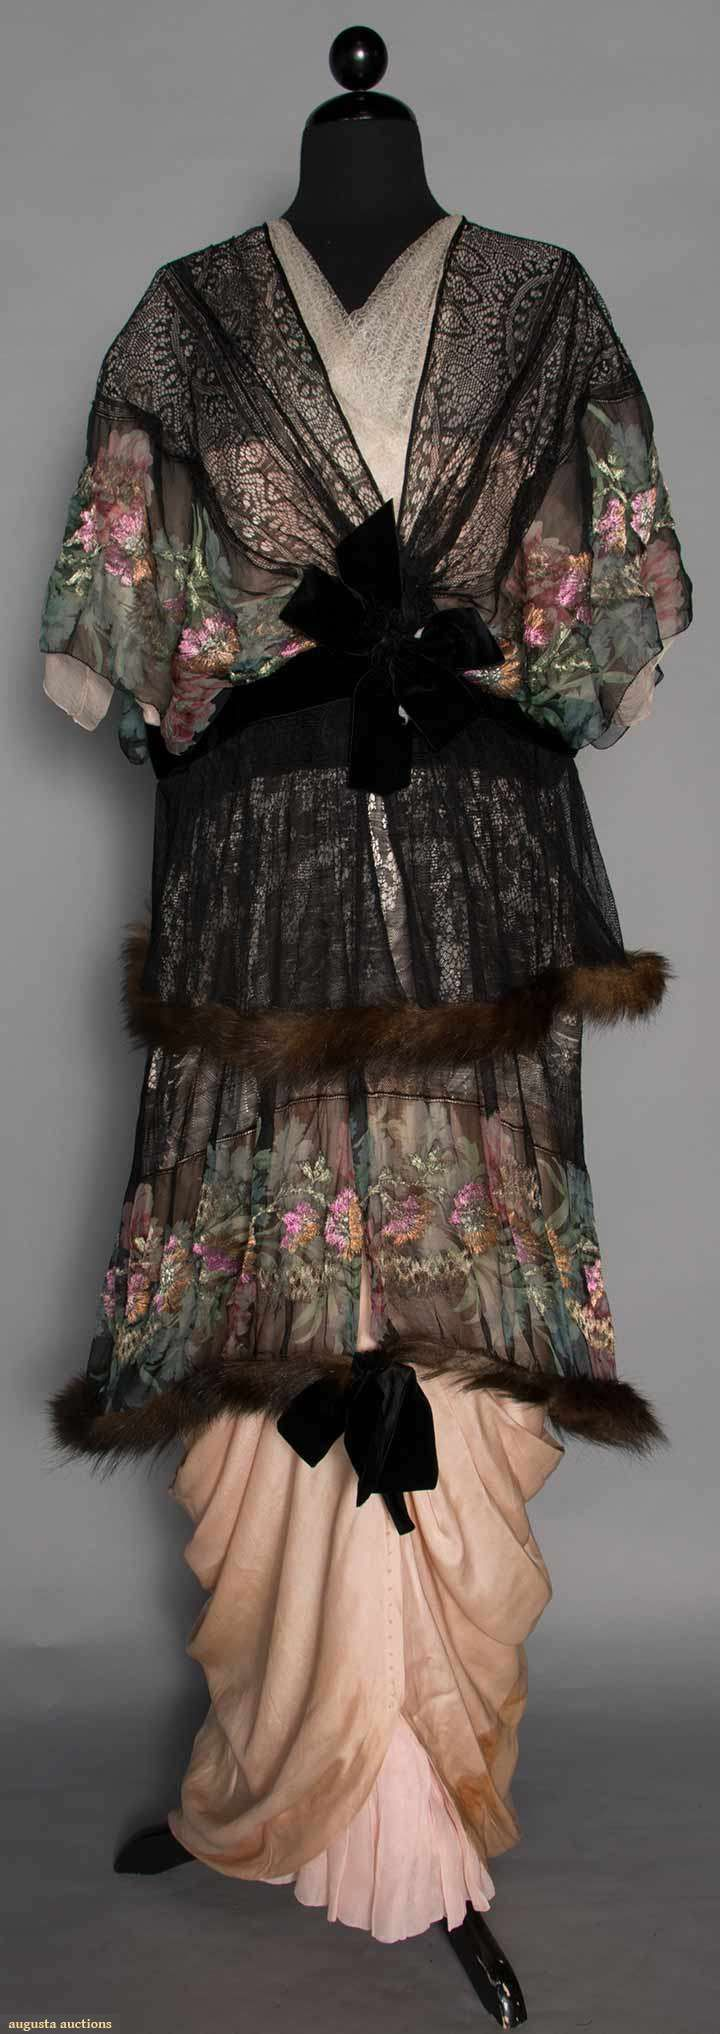 Printed Lame Evening Gown, C. 1913. For upcoming vintage and antique fashion and textile auction.